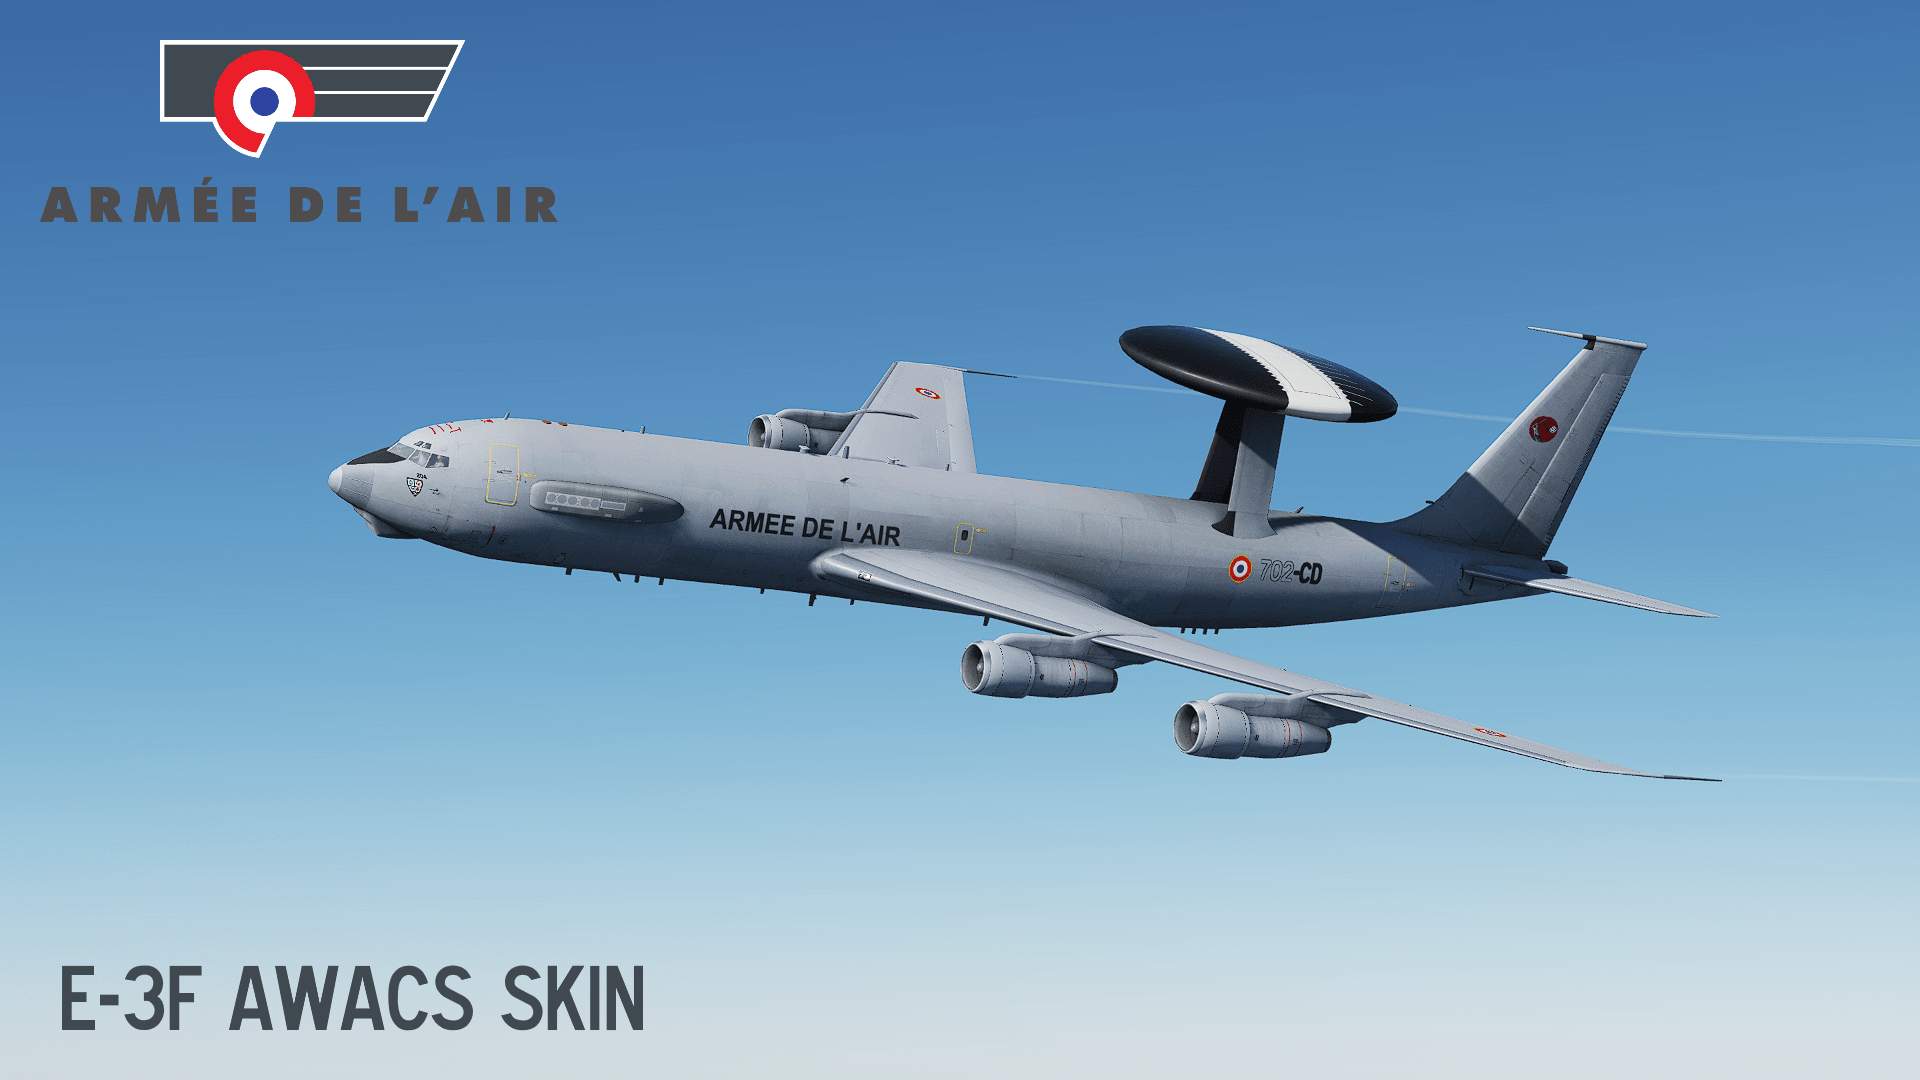 French Air Force E-3F